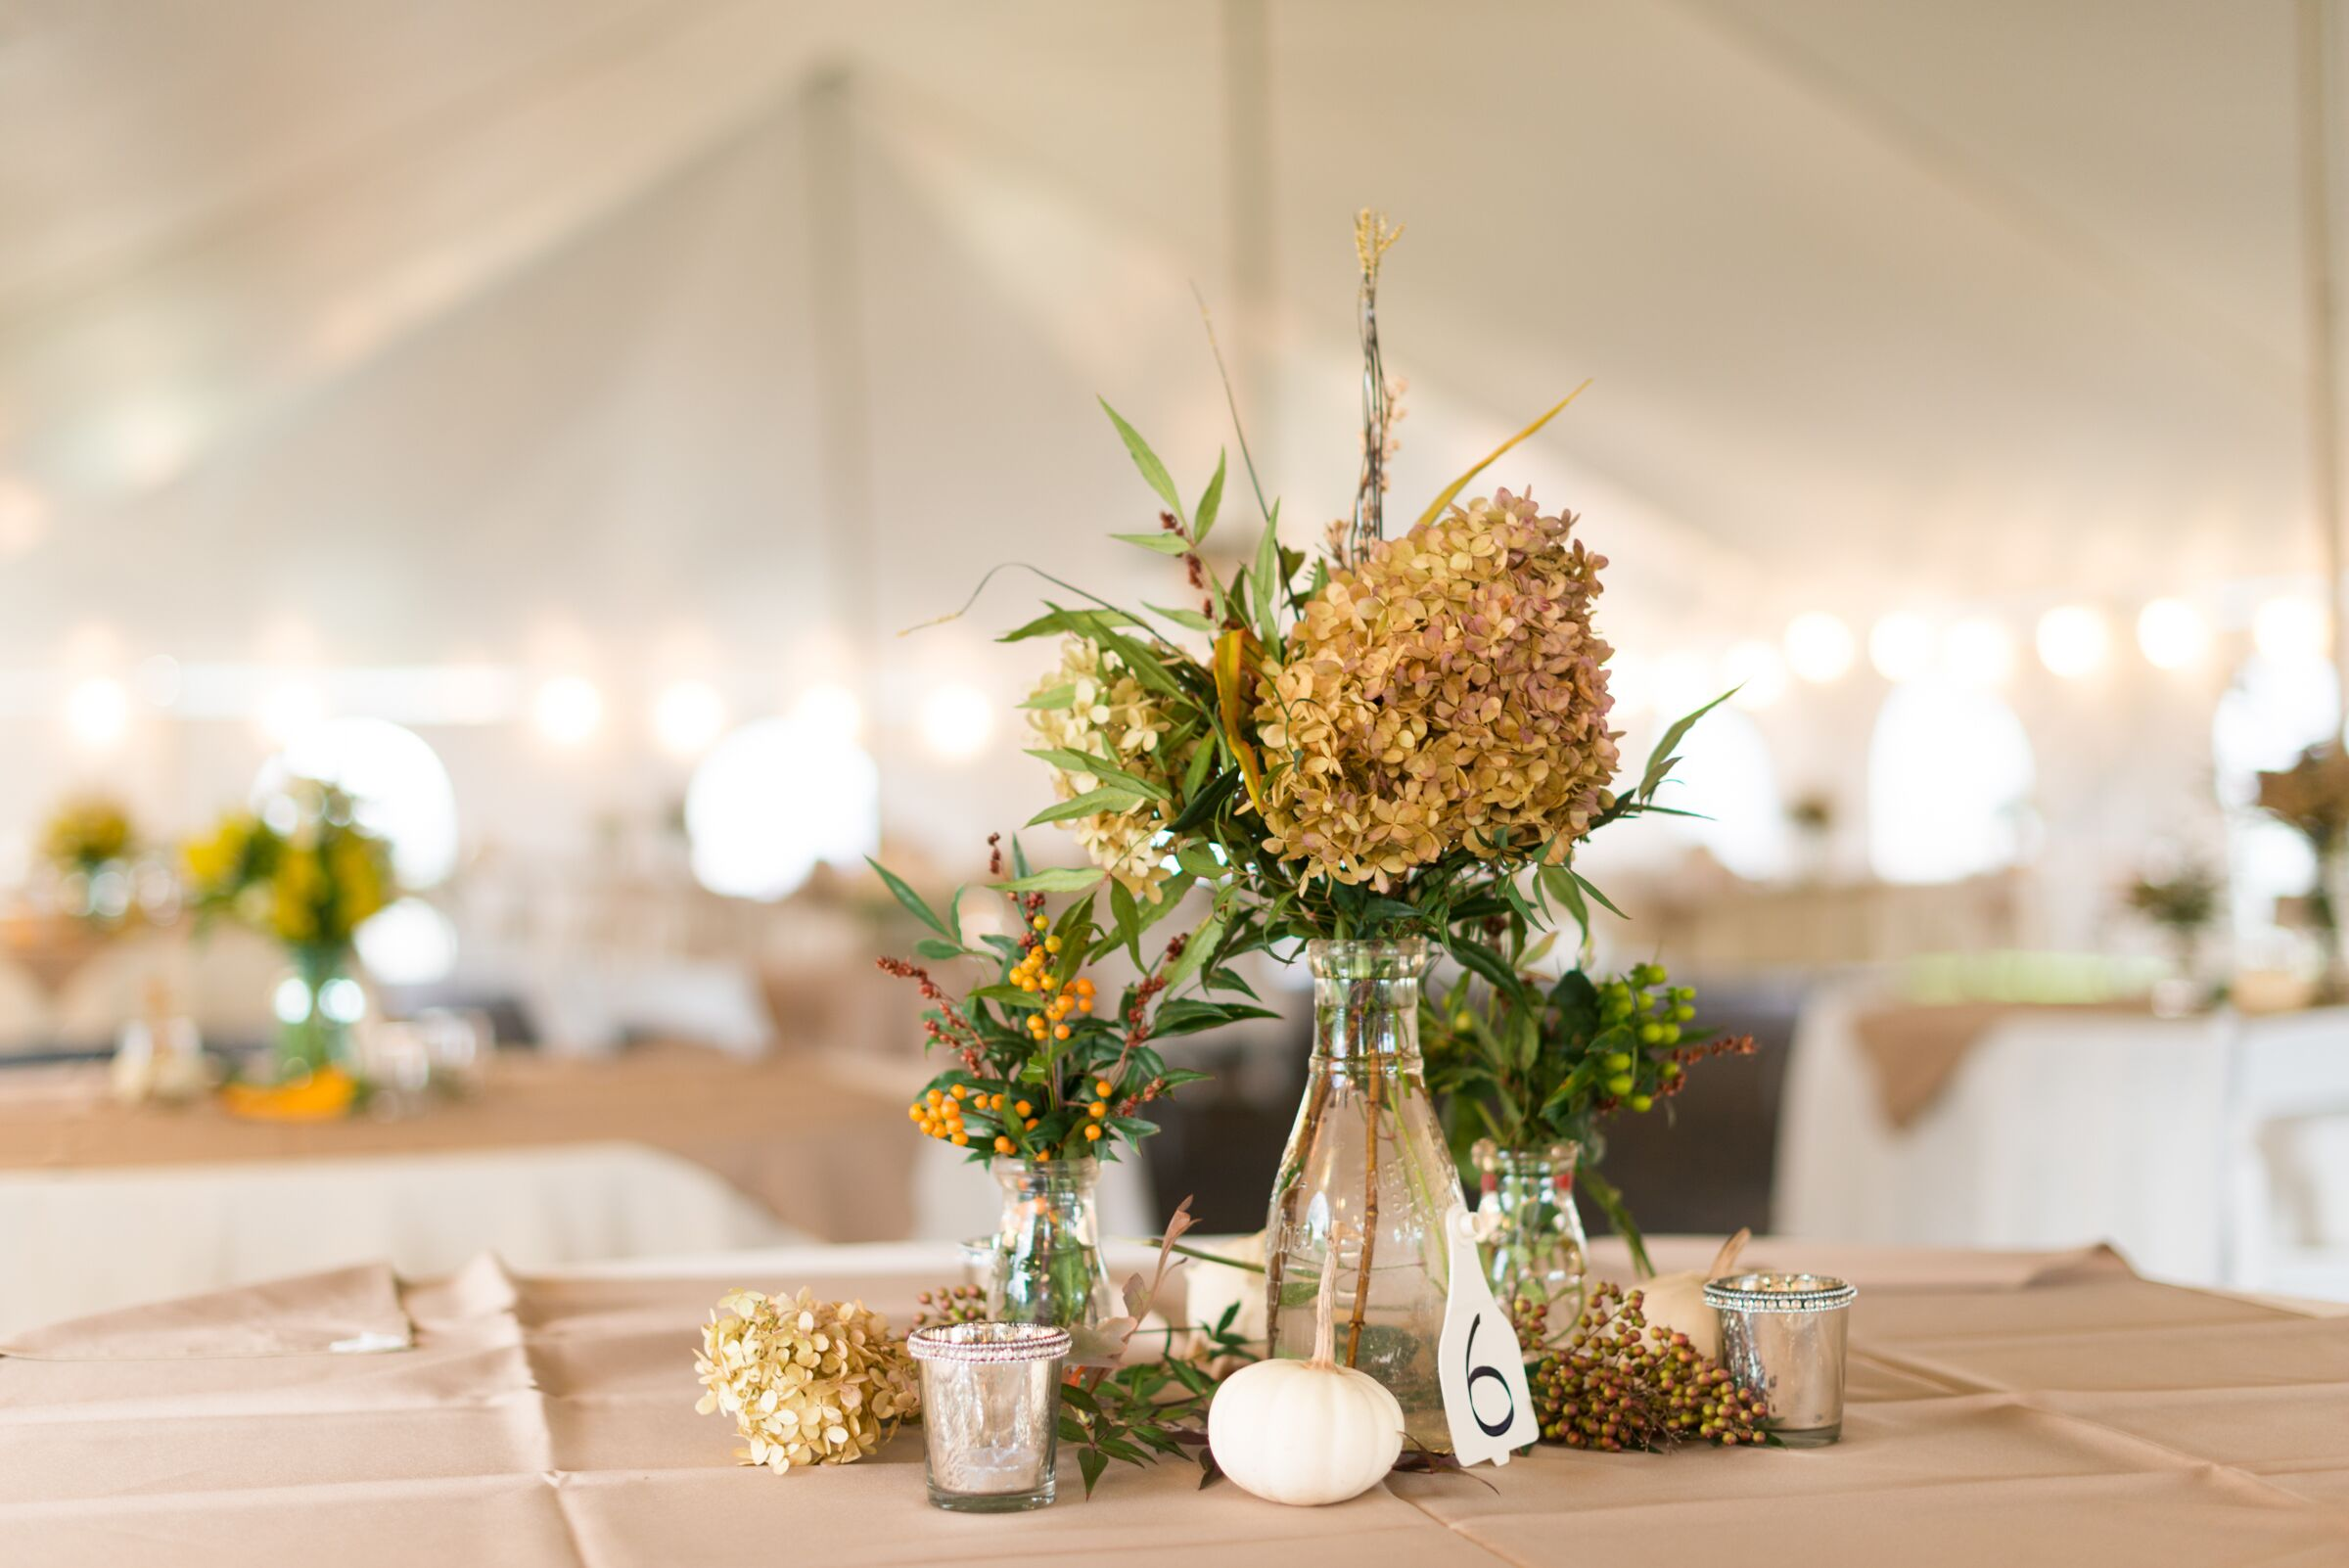 Centerpieces with dried hydrangeas and hypercium